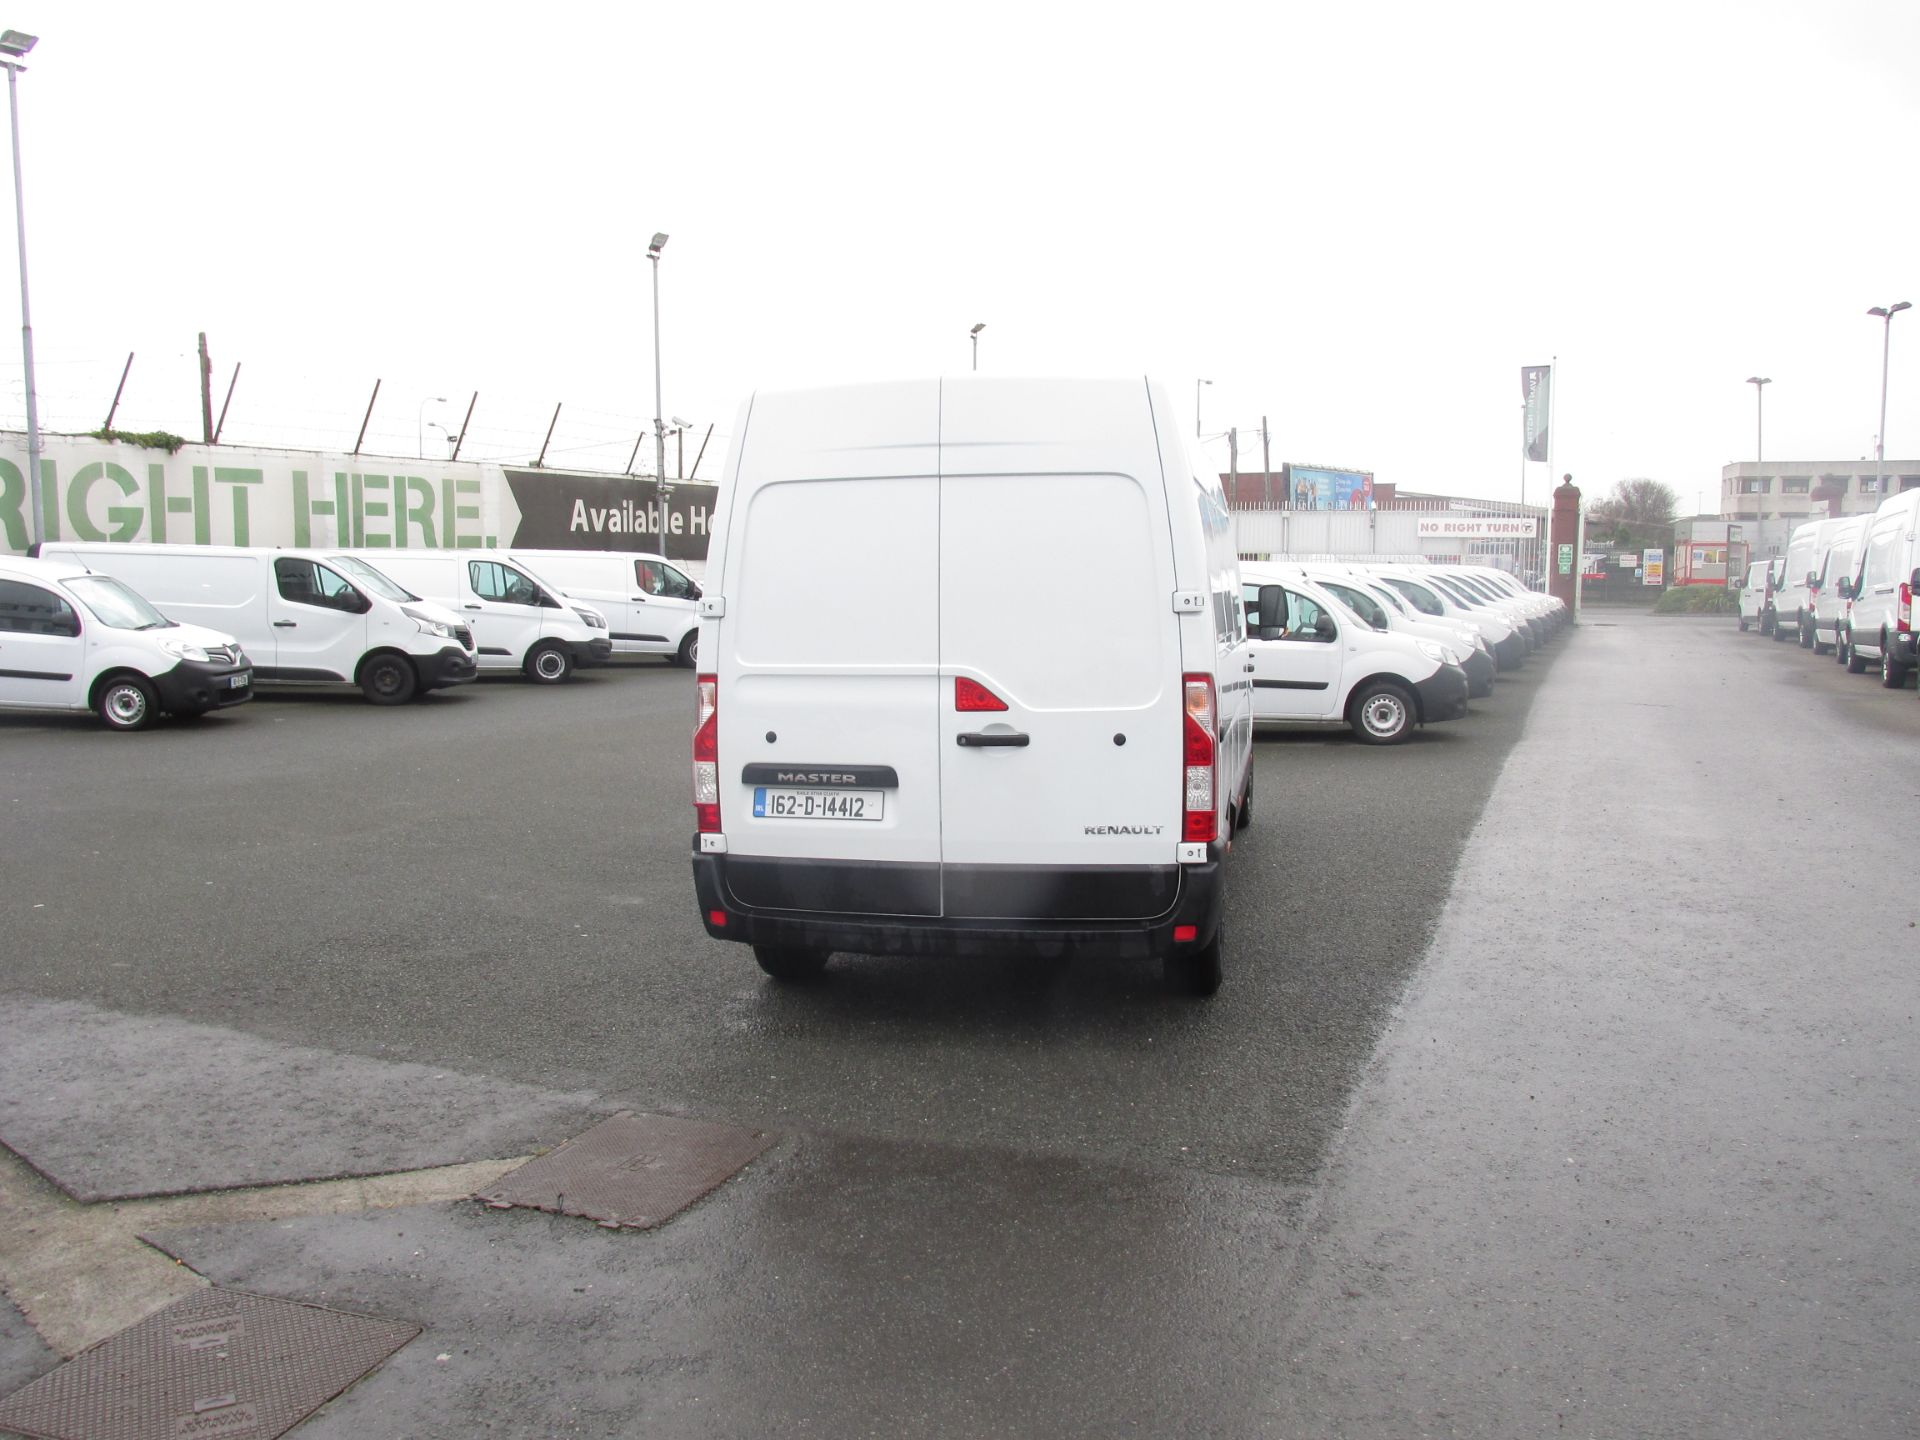 2016 Renault Master III FWD LM35 DCI 125 Business 3DR (162D14412) Image 6